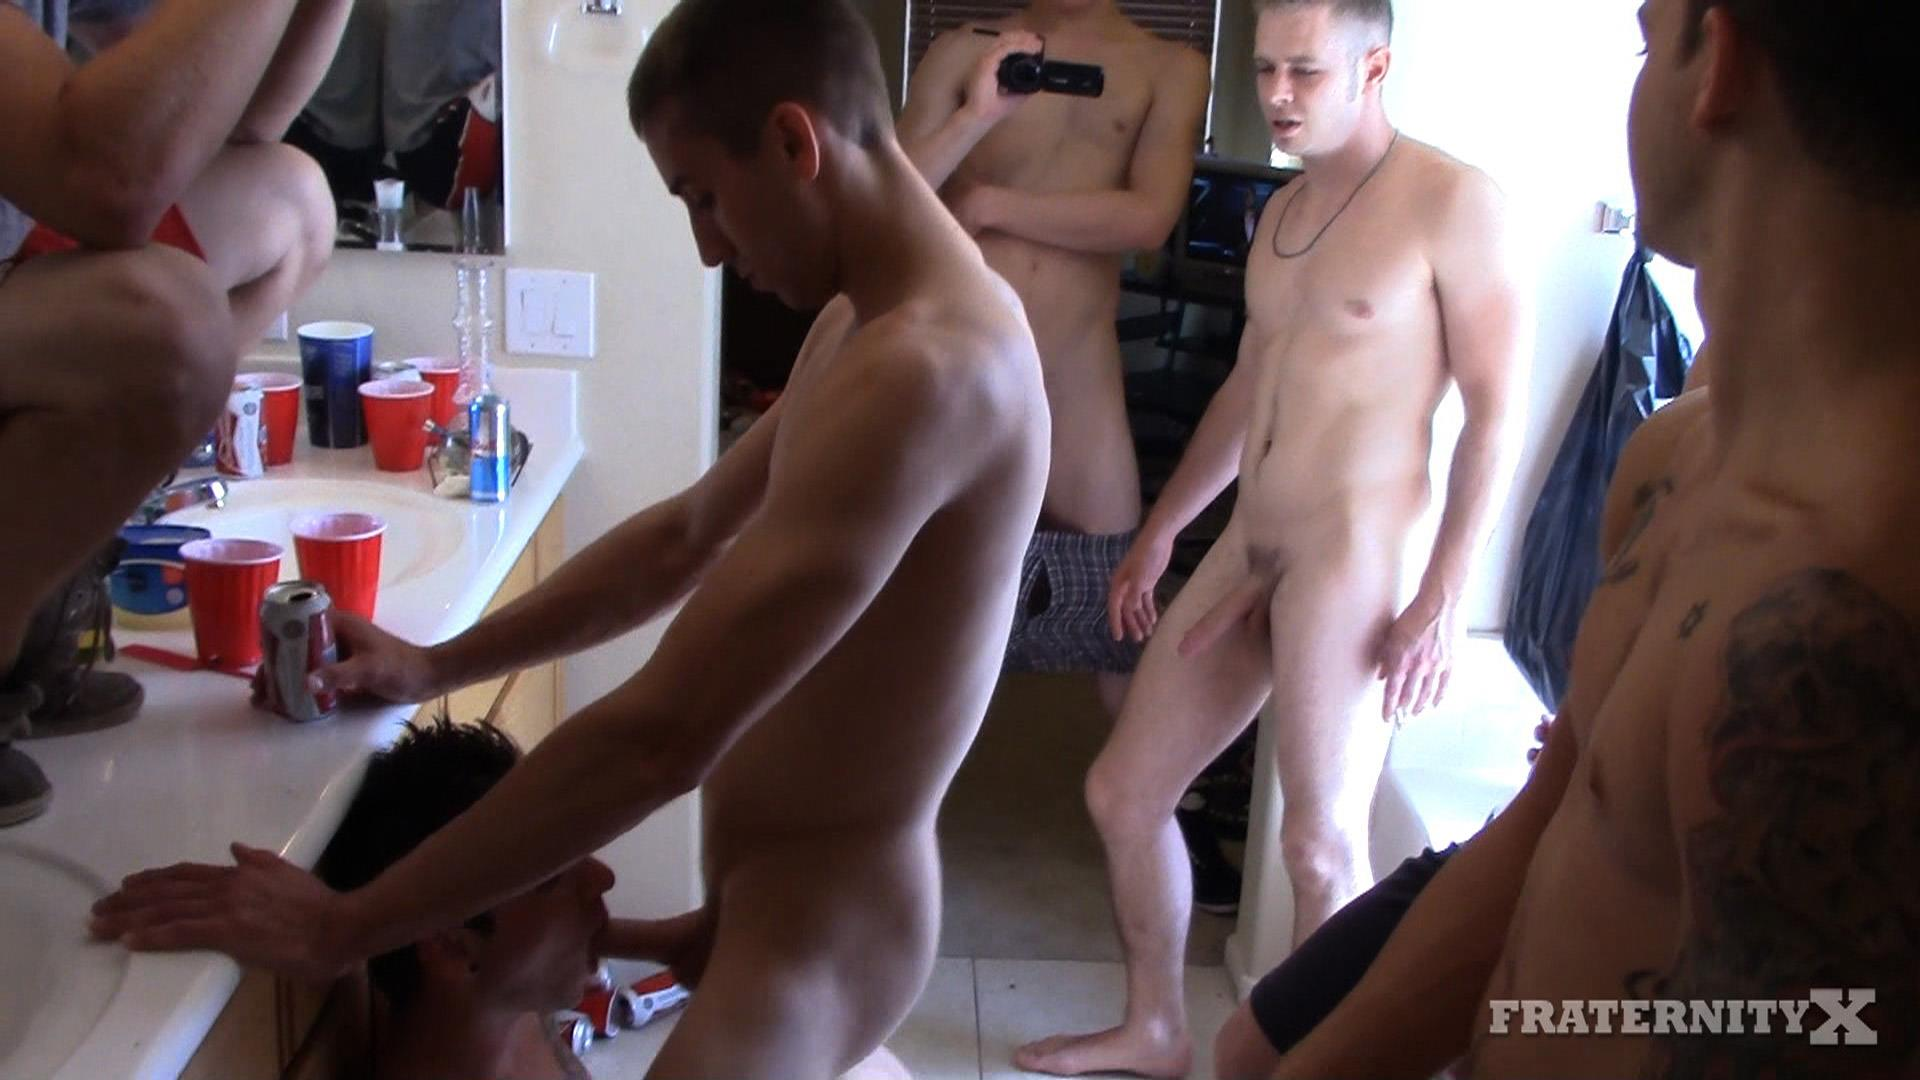 Amateur gangbang gay first time intent on 5